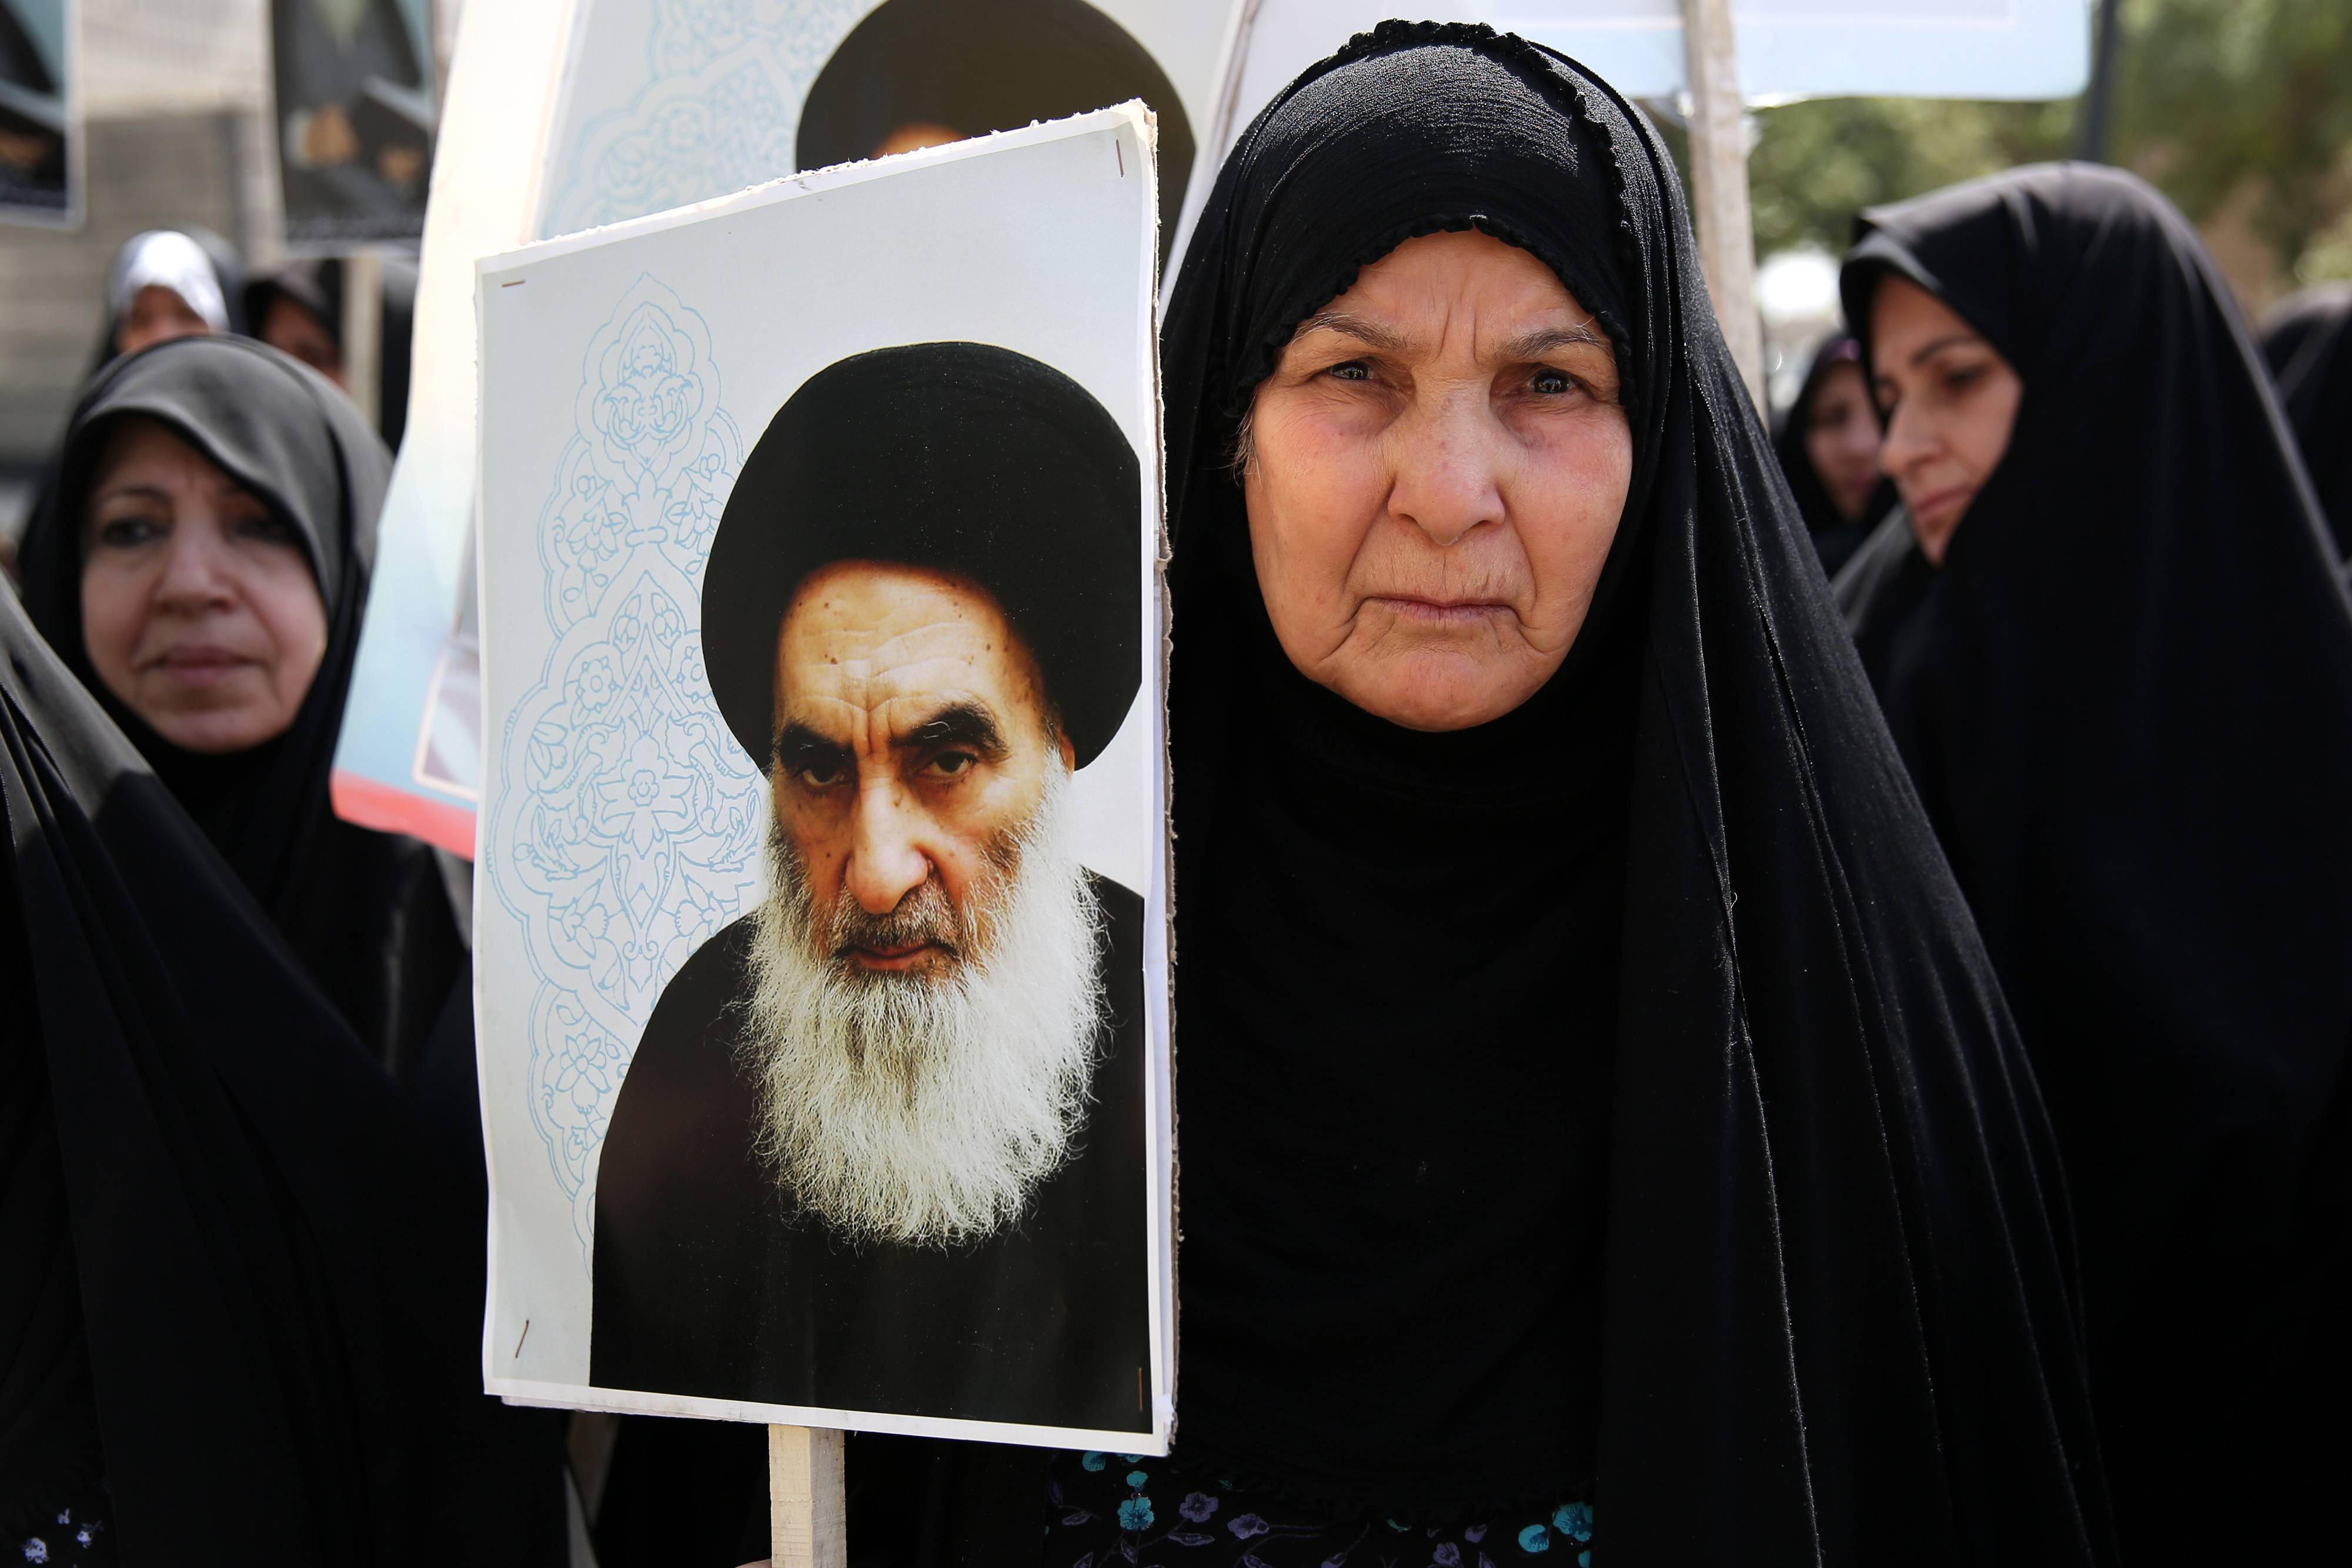 An Iraqi woman living in Iran holds a poster of the Grand Ayatollah Ali al-Sistani, Iraq's top Shiite cleric, in a demonstration against Sunni militants of the al-Qaida-inspired Islamic State of Iraq and the Levant, or ISIL, and to support Ayatollah al-Sistani, in Tehran, Iran. Prominent Shiite leaders pushed Thursday for the removal of Iraqi Prime Minister Nouri al-Maliki as parliament prepared to start work next week on putting together a new government, under intense U.S. pressure to rapidly form a united front against an unrelenting Sunni insurgent onslaught.